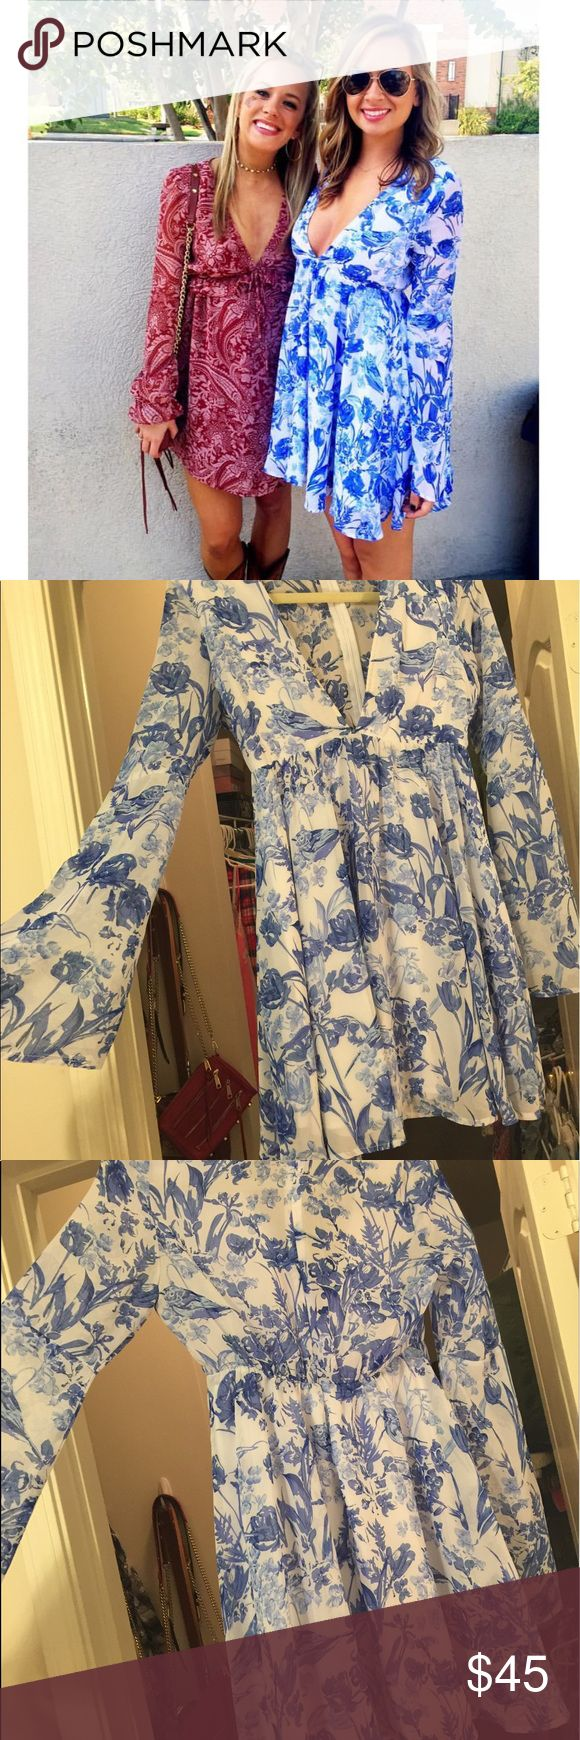 Blue & White Urban Outfitters Dress Super cute dress - worn one time. Zips up in Back with closure. Purchased from Urban online. Size small. Urban Outfitters Dresses